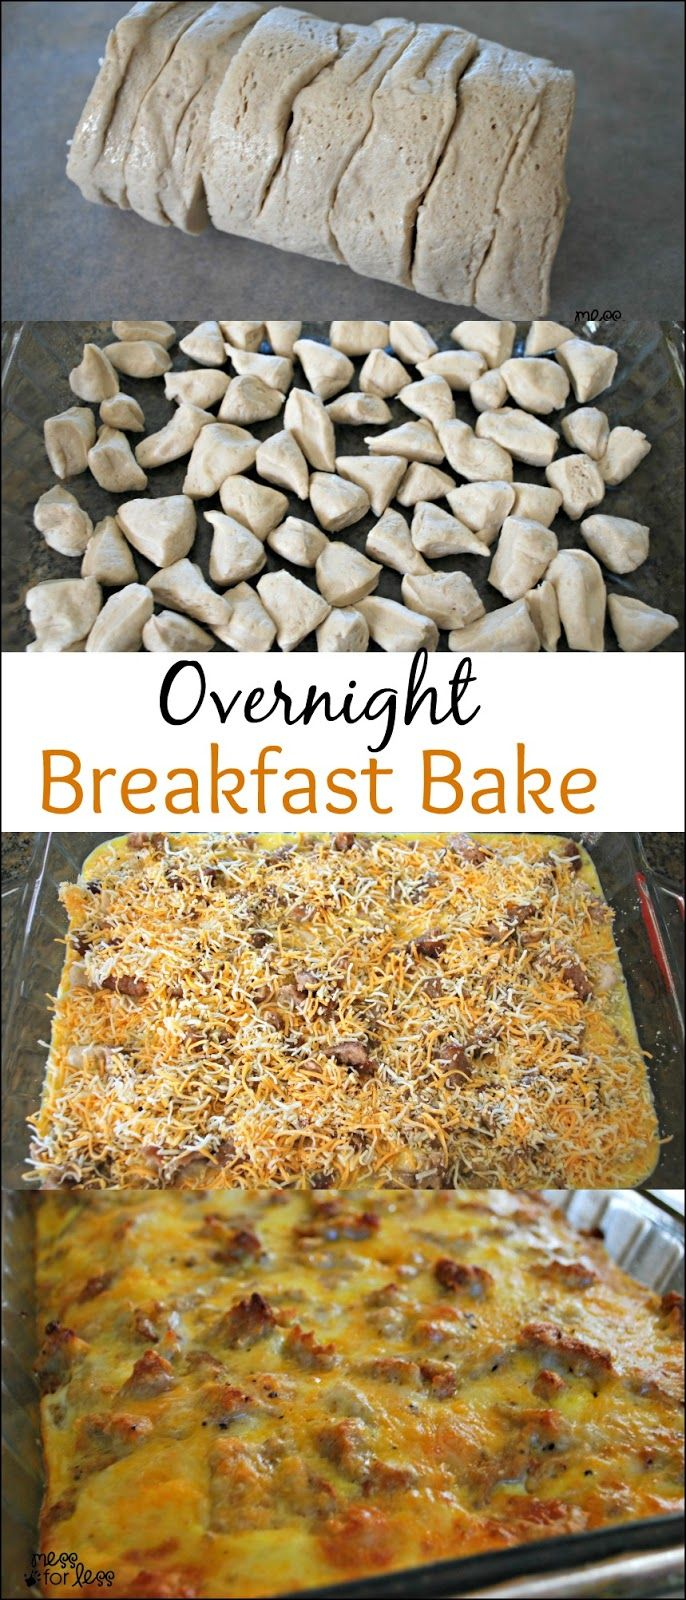 Sausage, Egg and Biscuit Breakfast Casserole - Make this ahead of time and just…